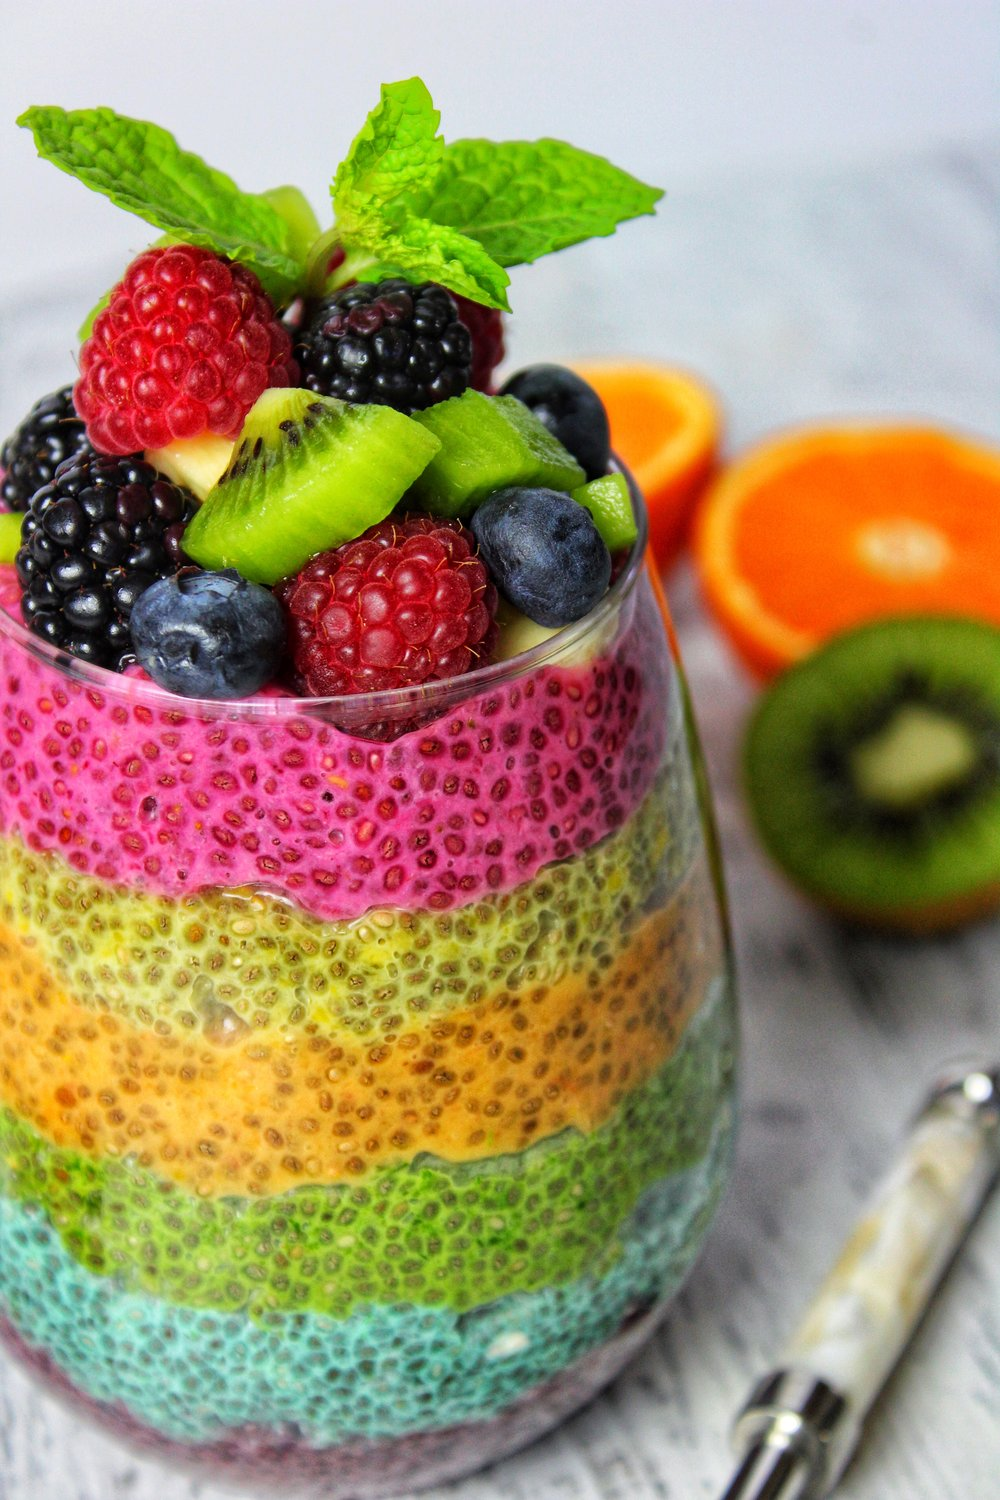 Taste the chia rainbow!